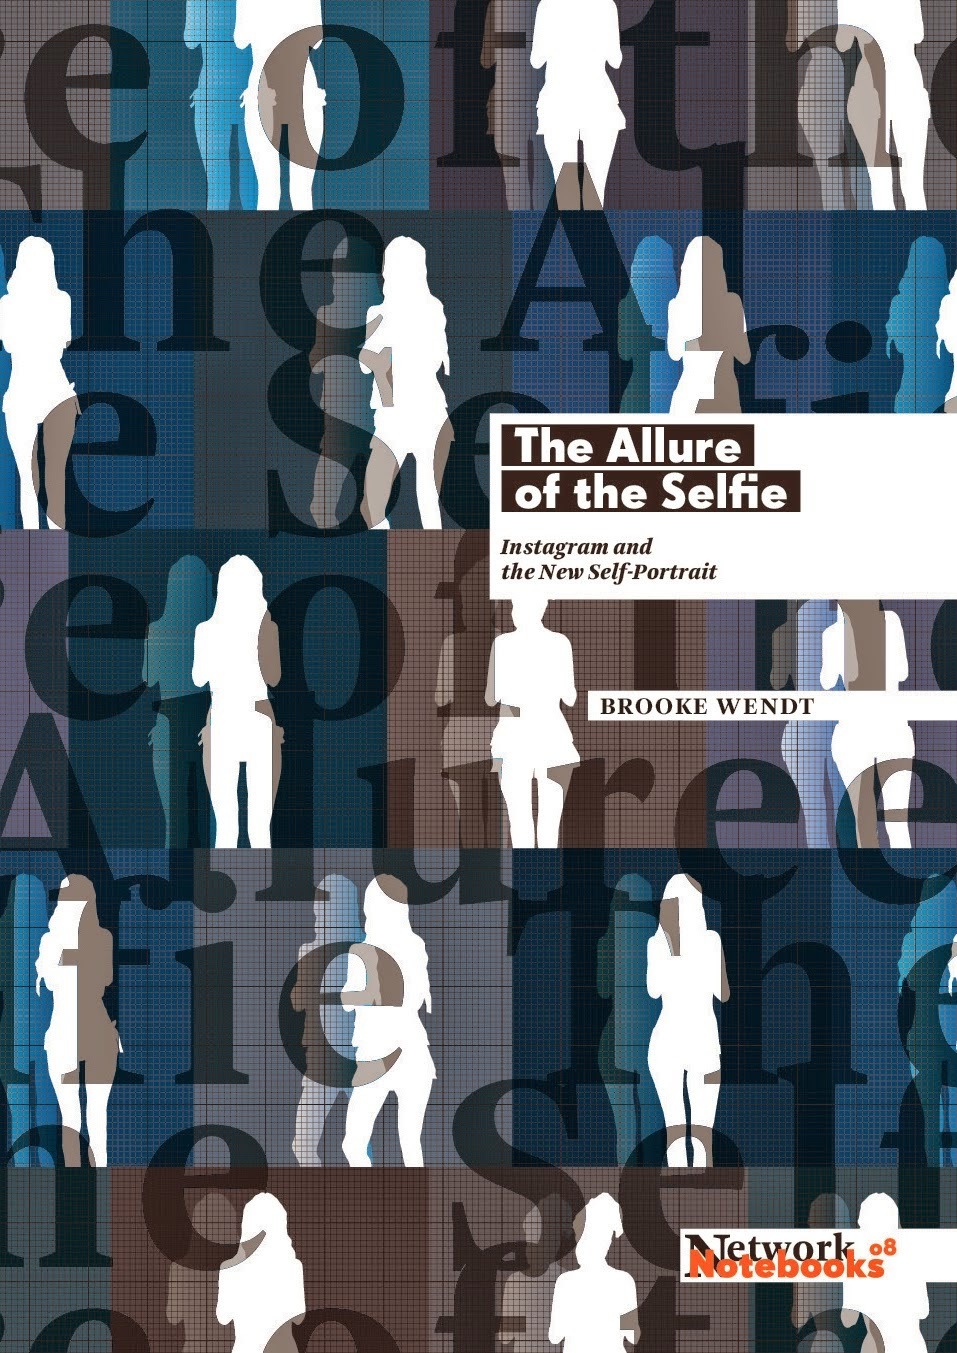 http://thesmallpressbookreview.blogspot.com/2015/03/review-of-brooke-wendts-allure-of-selfie.html